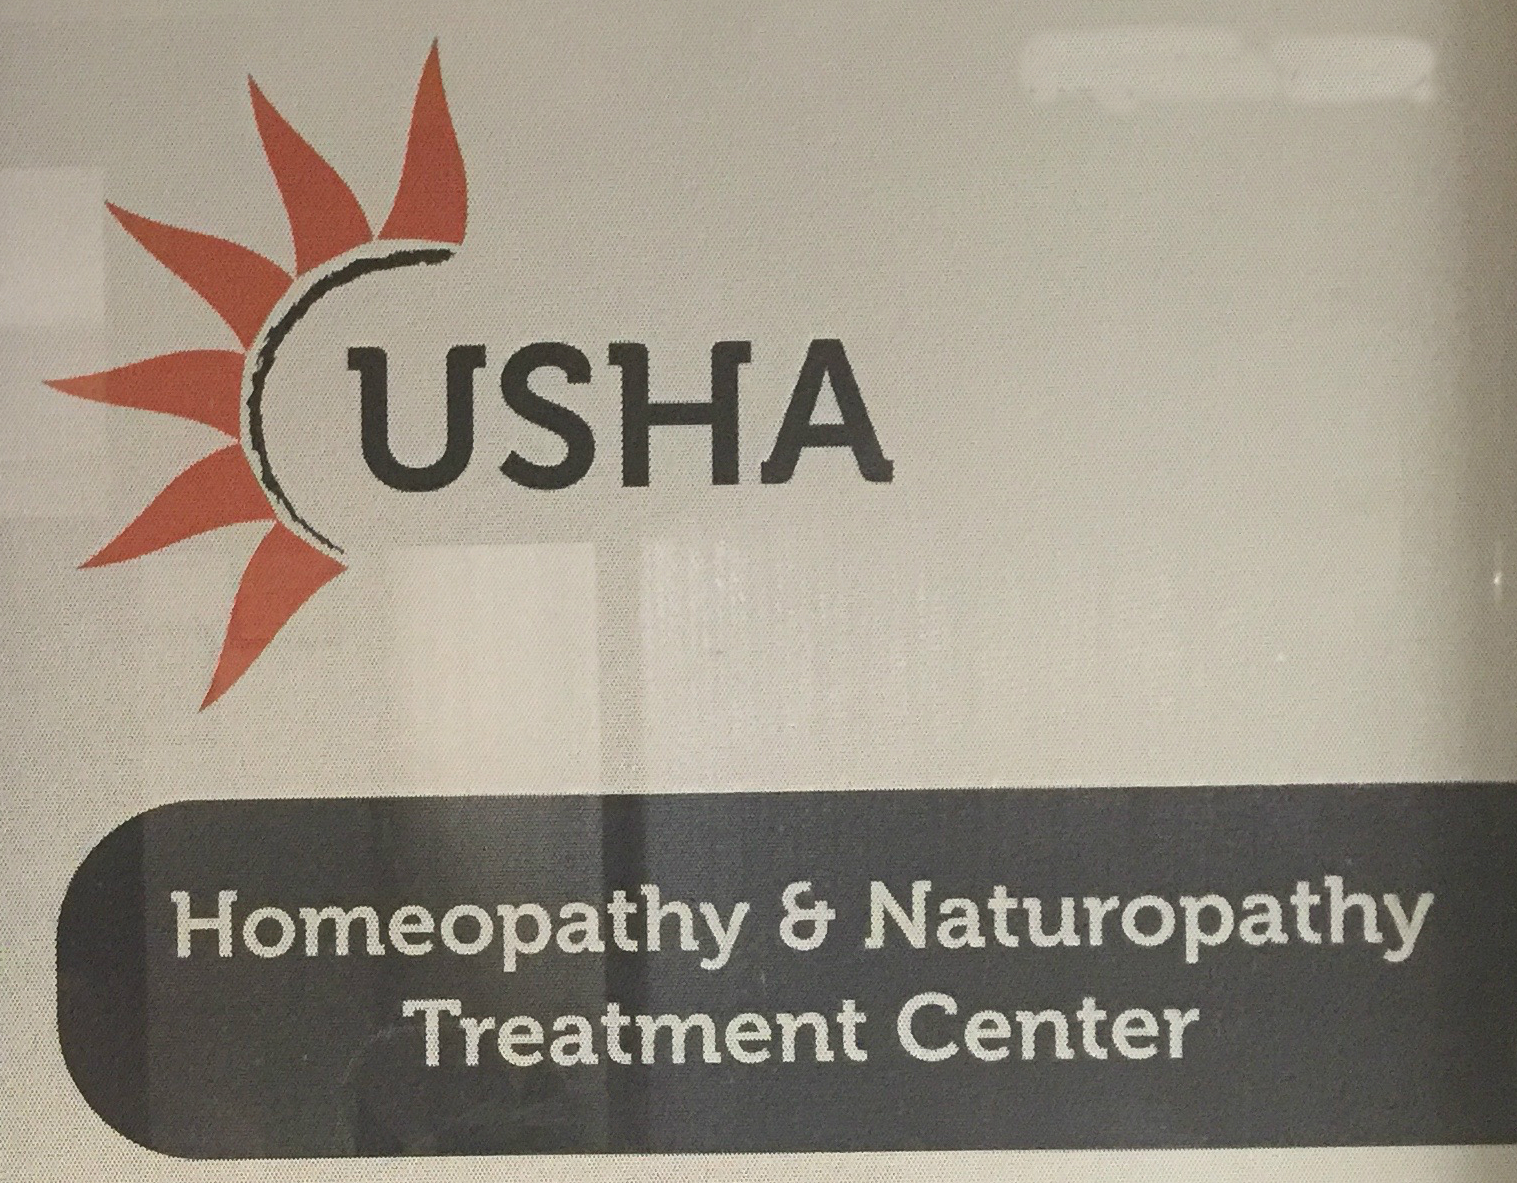 Usha Homeopathy & Naturopathy Treatment Center